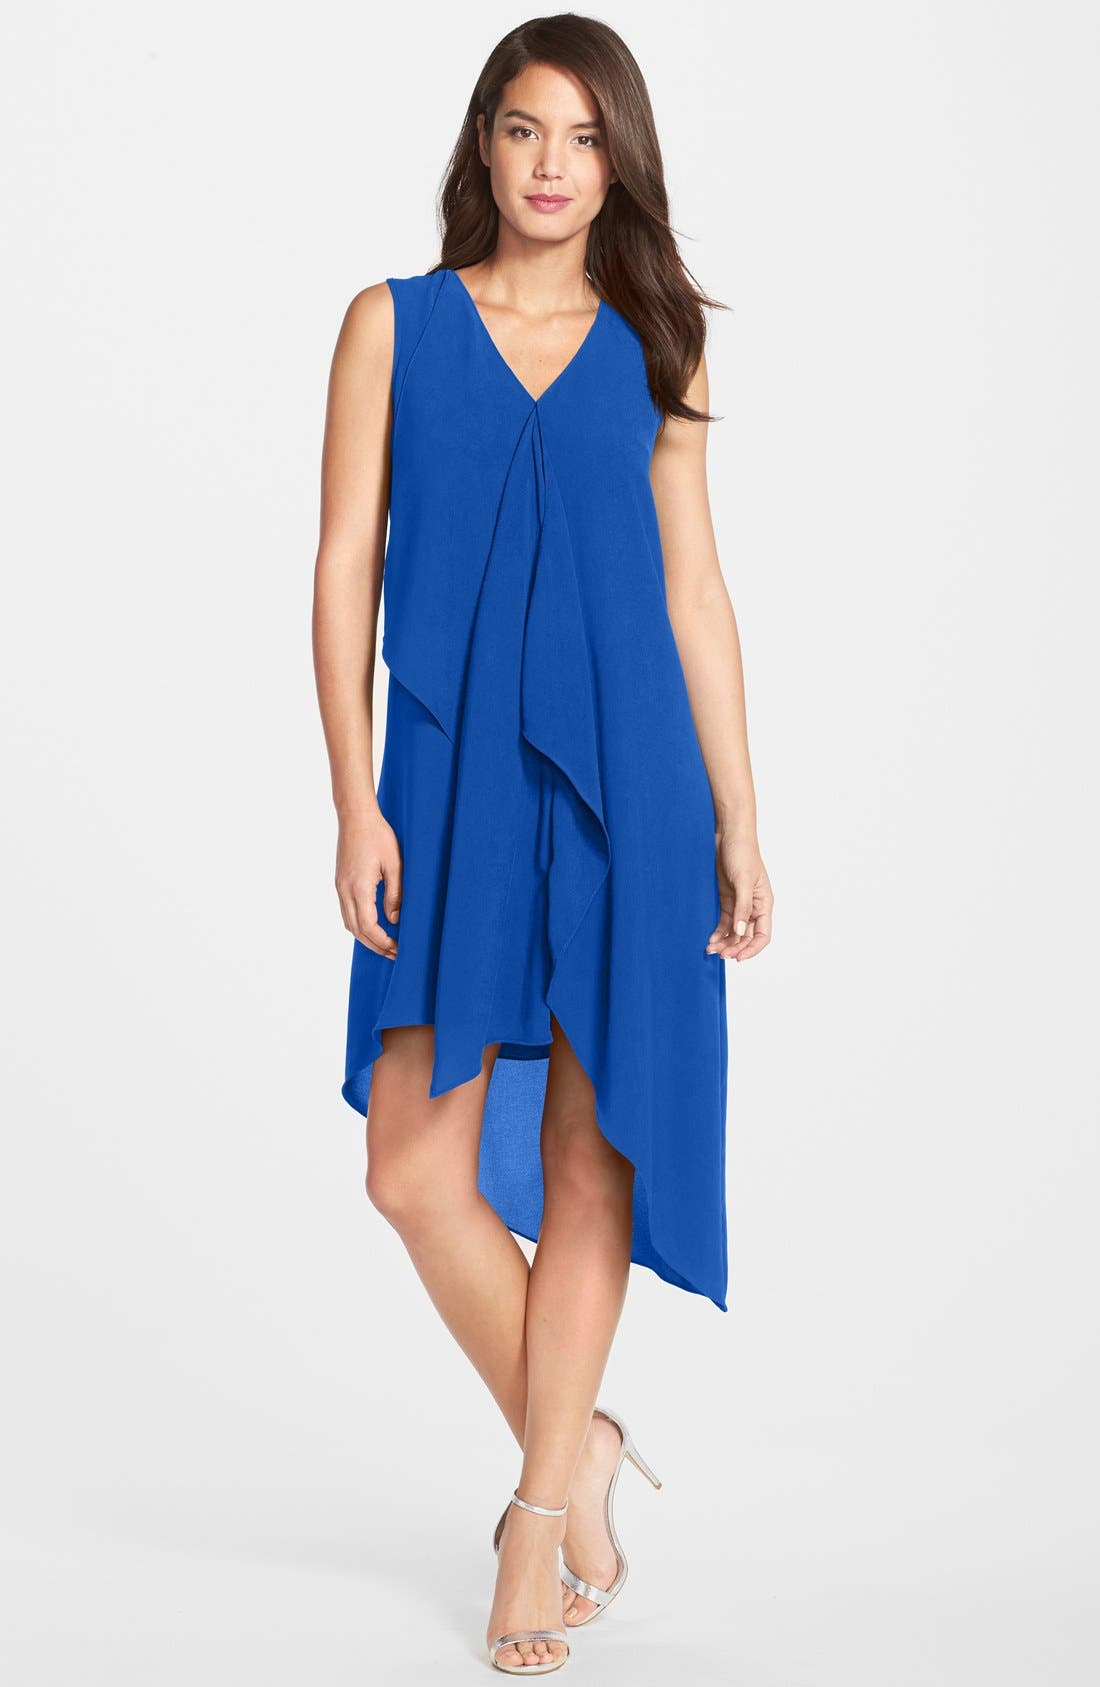 Alternate Image 1 Selected - Adrianna Papell Ruffle Front Crepe High/Low Dress (Regular & Petite)